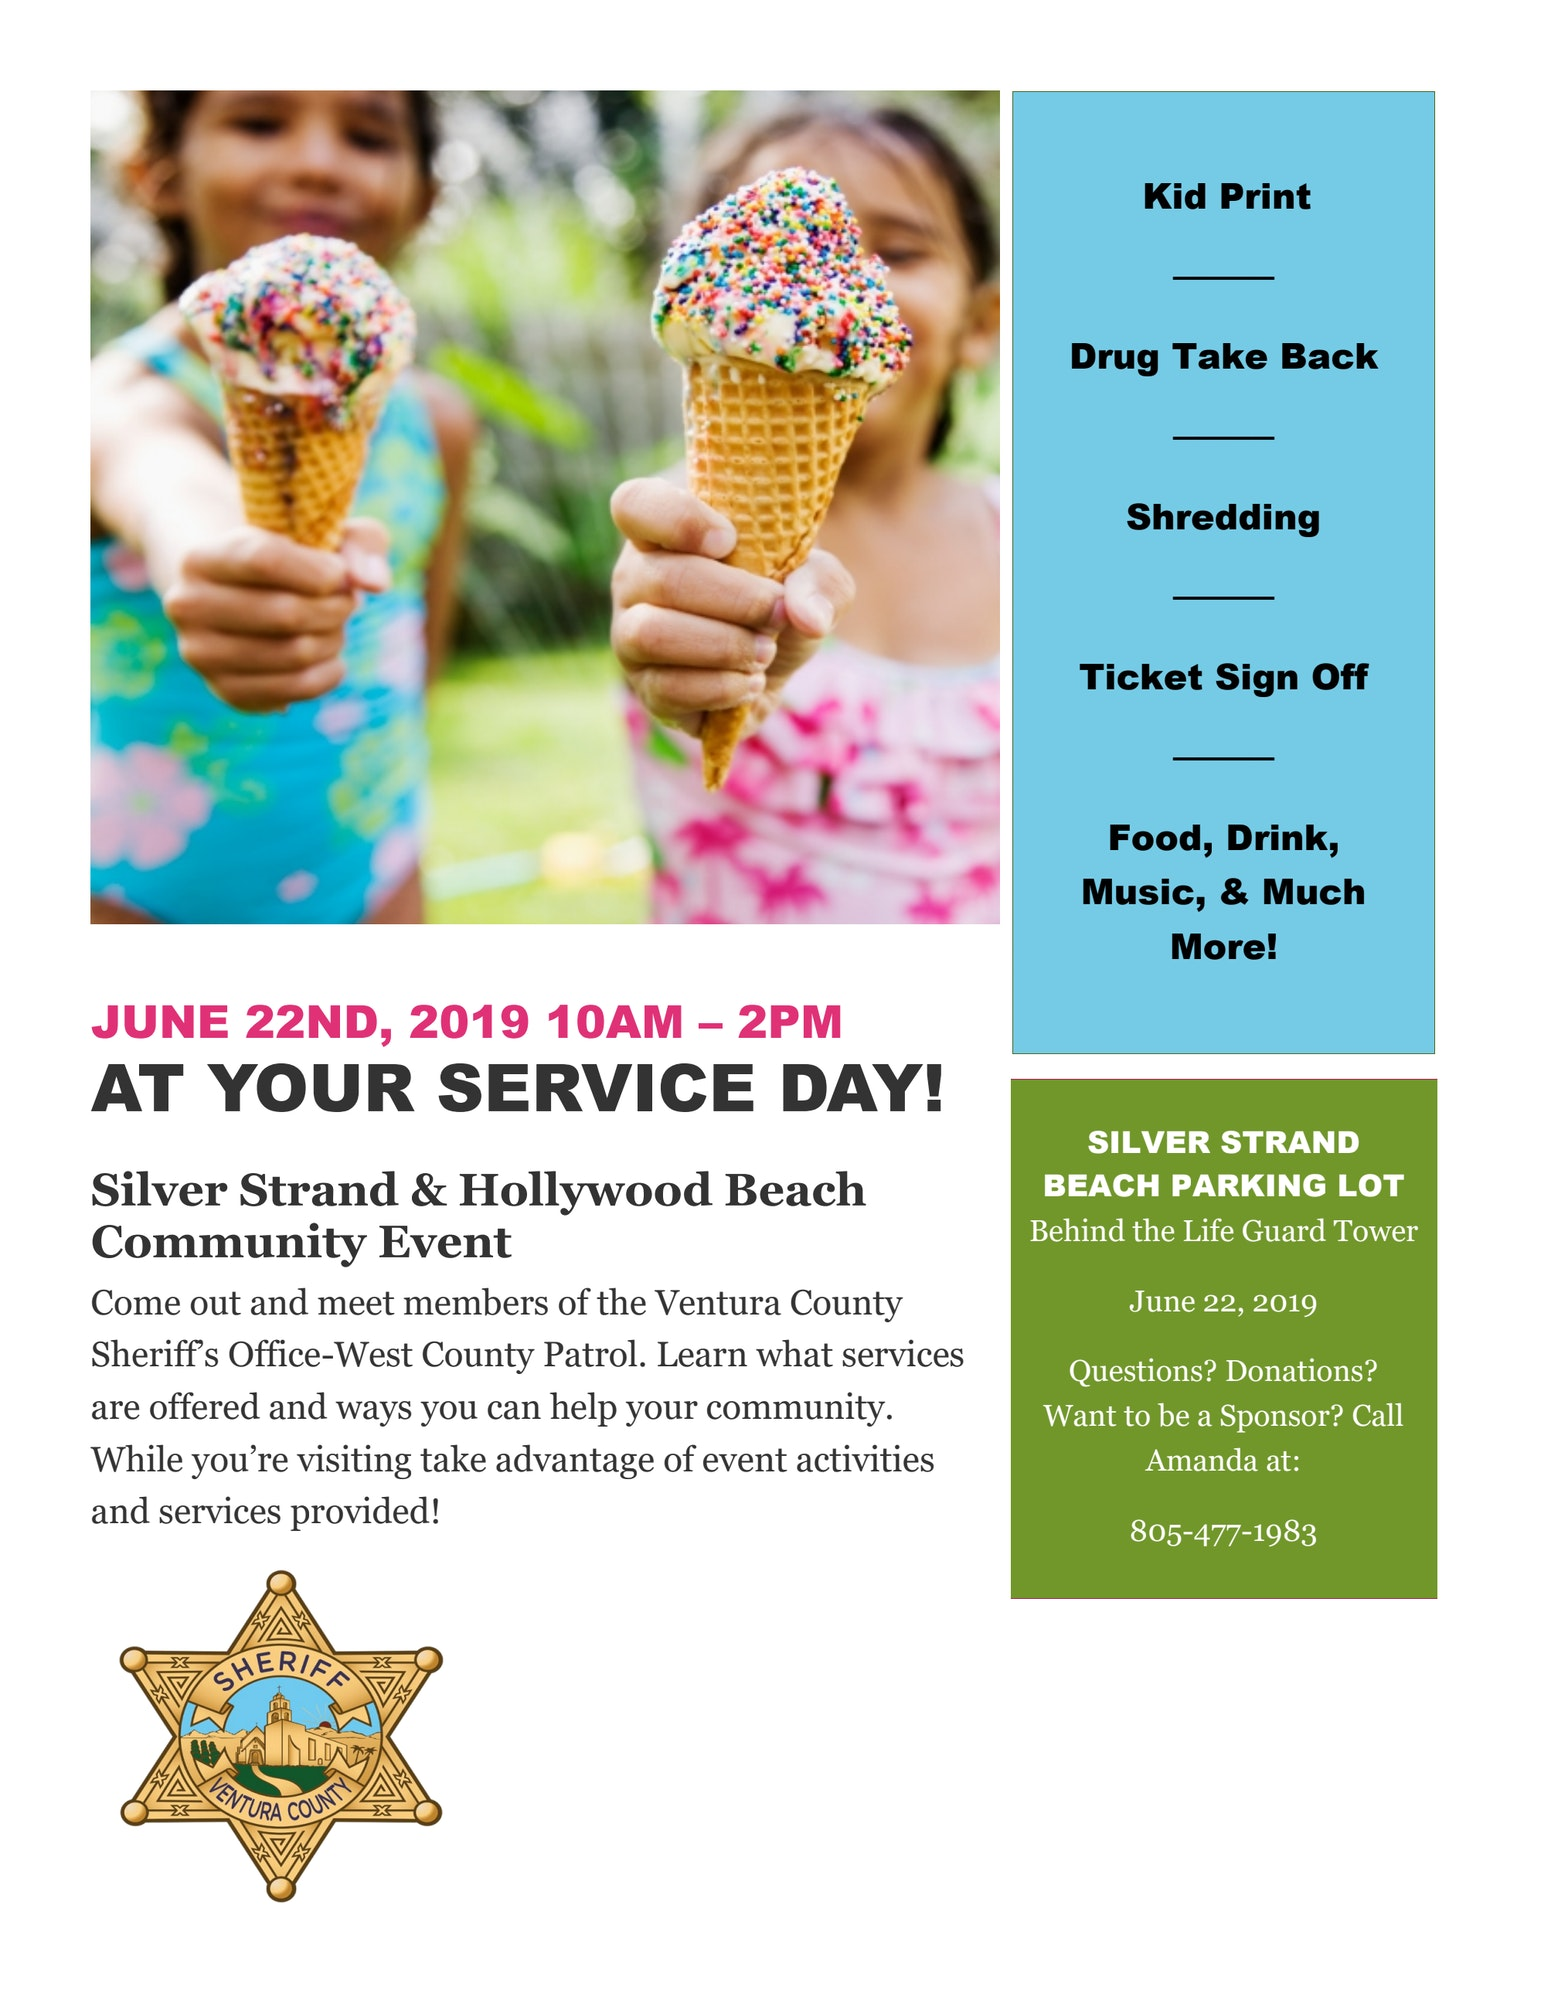 At your Service Day Flyer